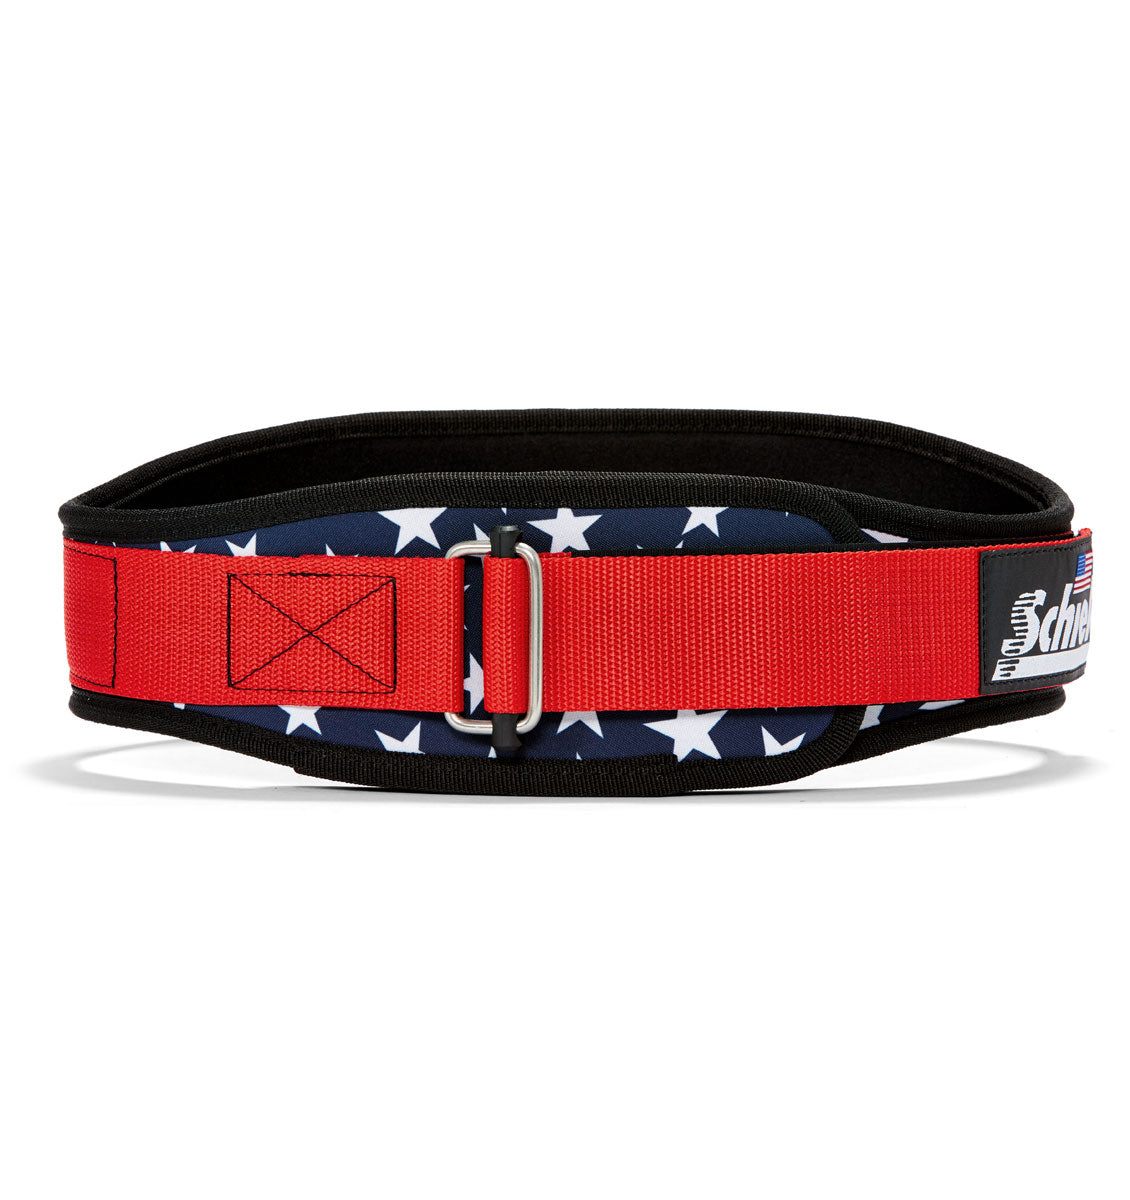 2004 Stars n Stripes Schiek Contour Weight Lifting Belt Stars and Stripes Front